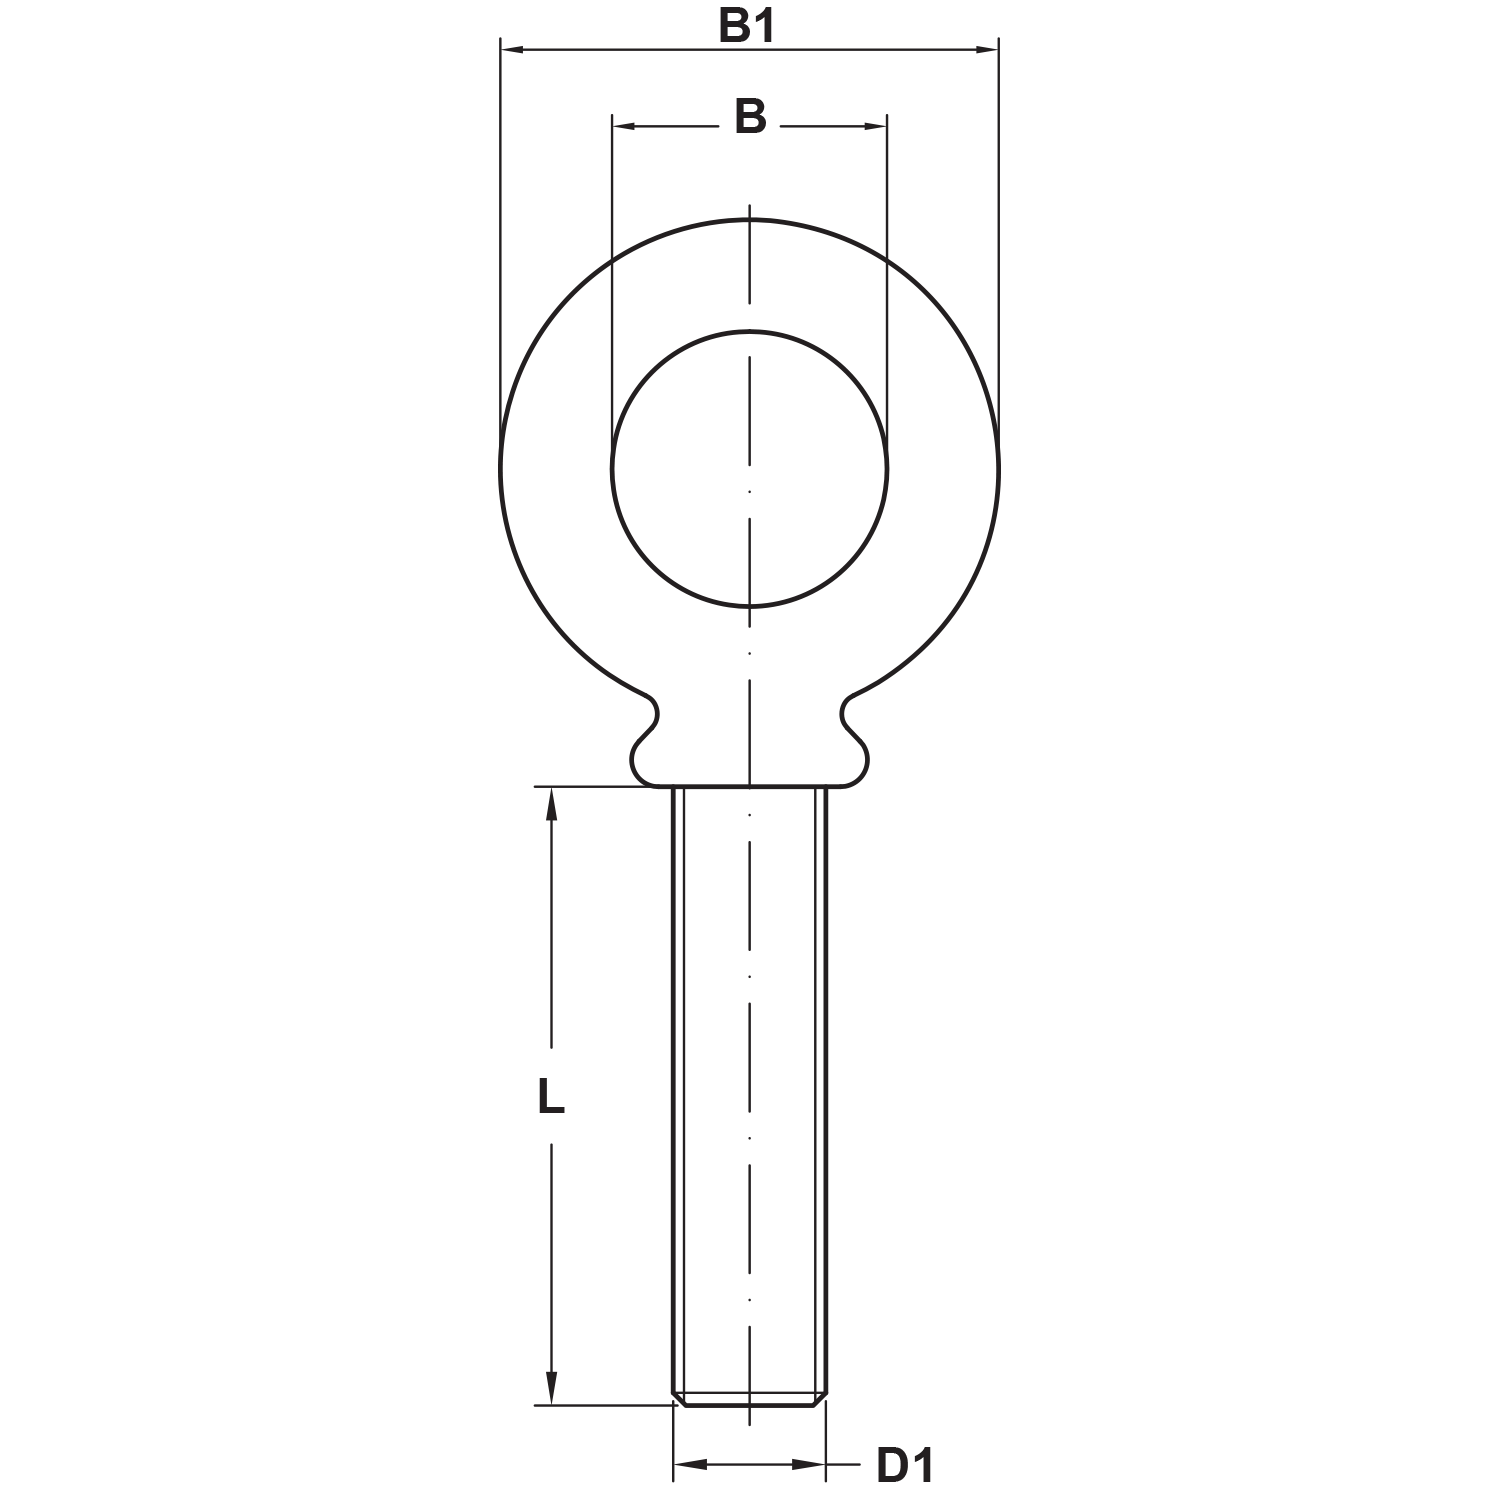 1-2-x-1-1-2-stainless-steel-machinery-eye-bolt-diagram